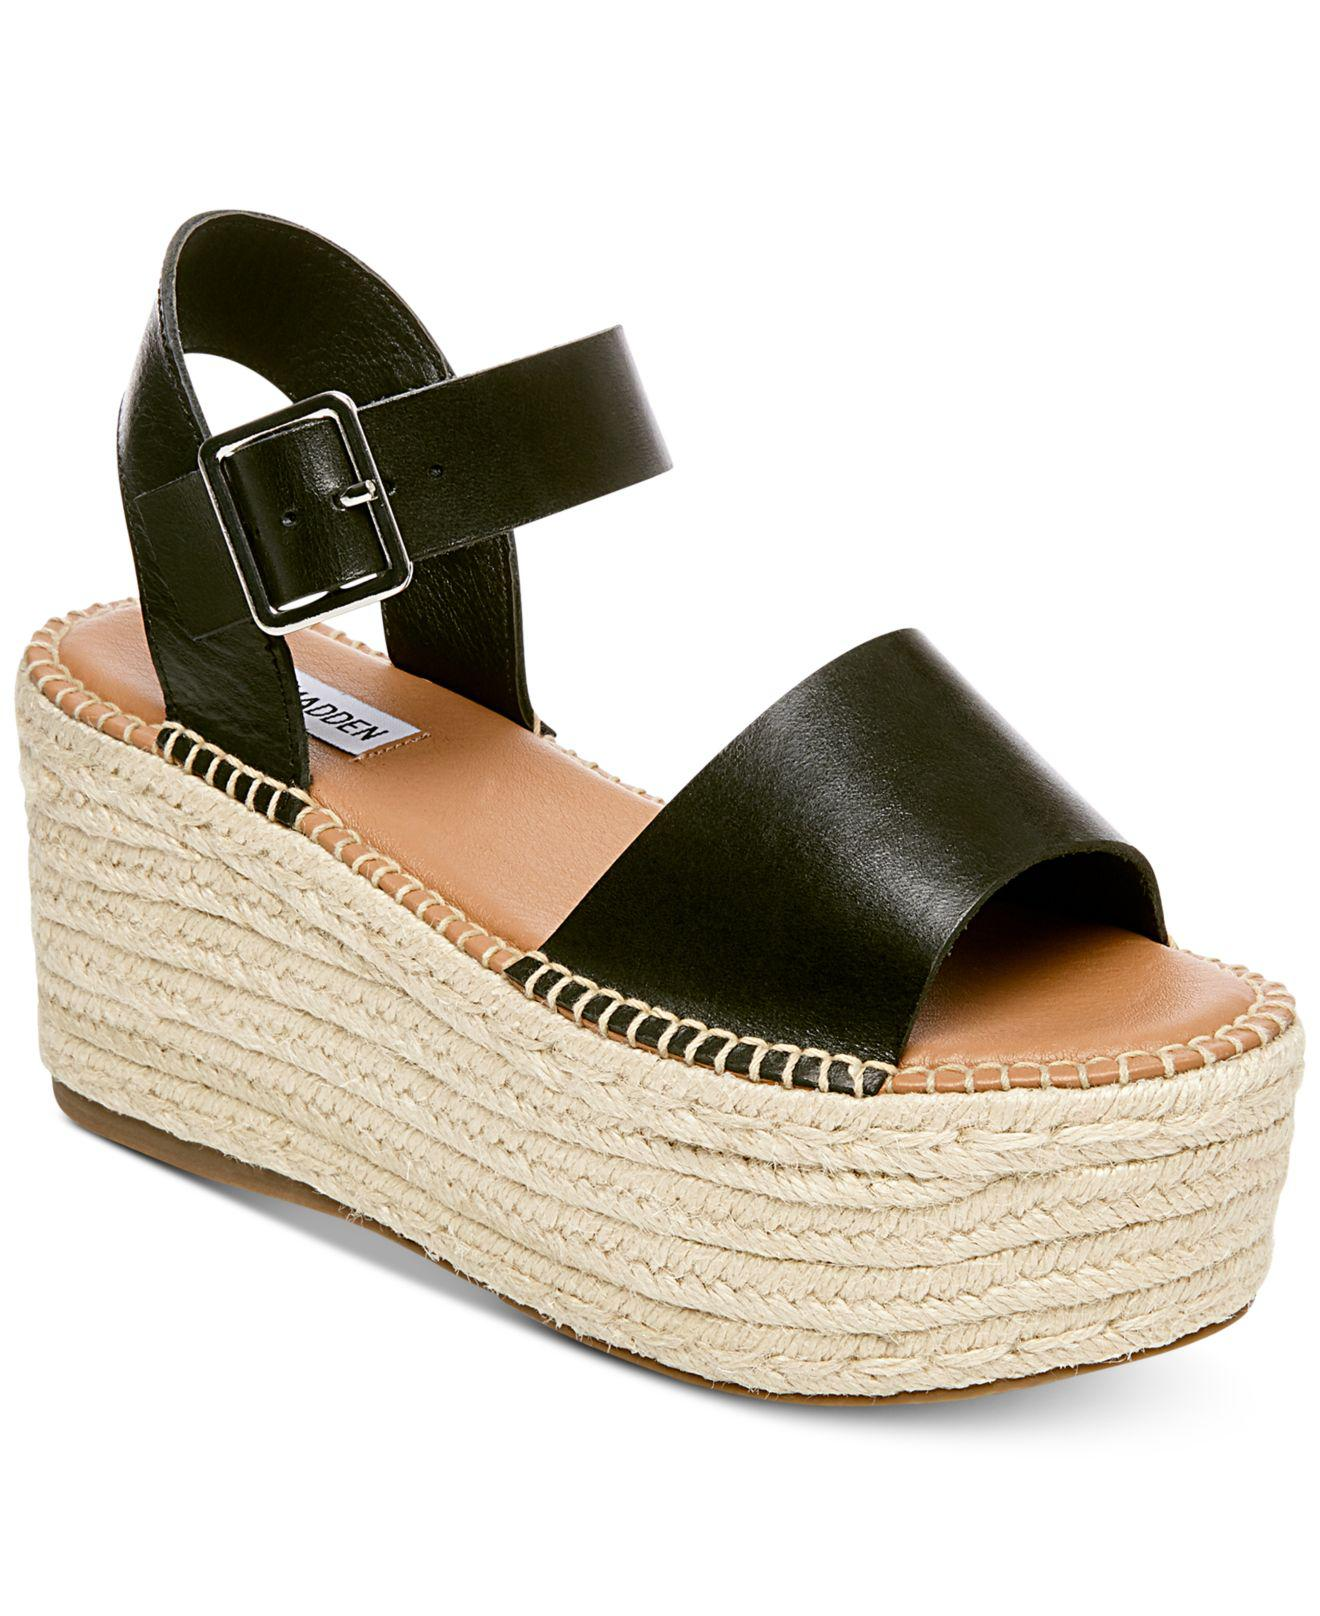 5ca5bded70e Lyst - Steve Madden Cabo Wedge Sandals in Black